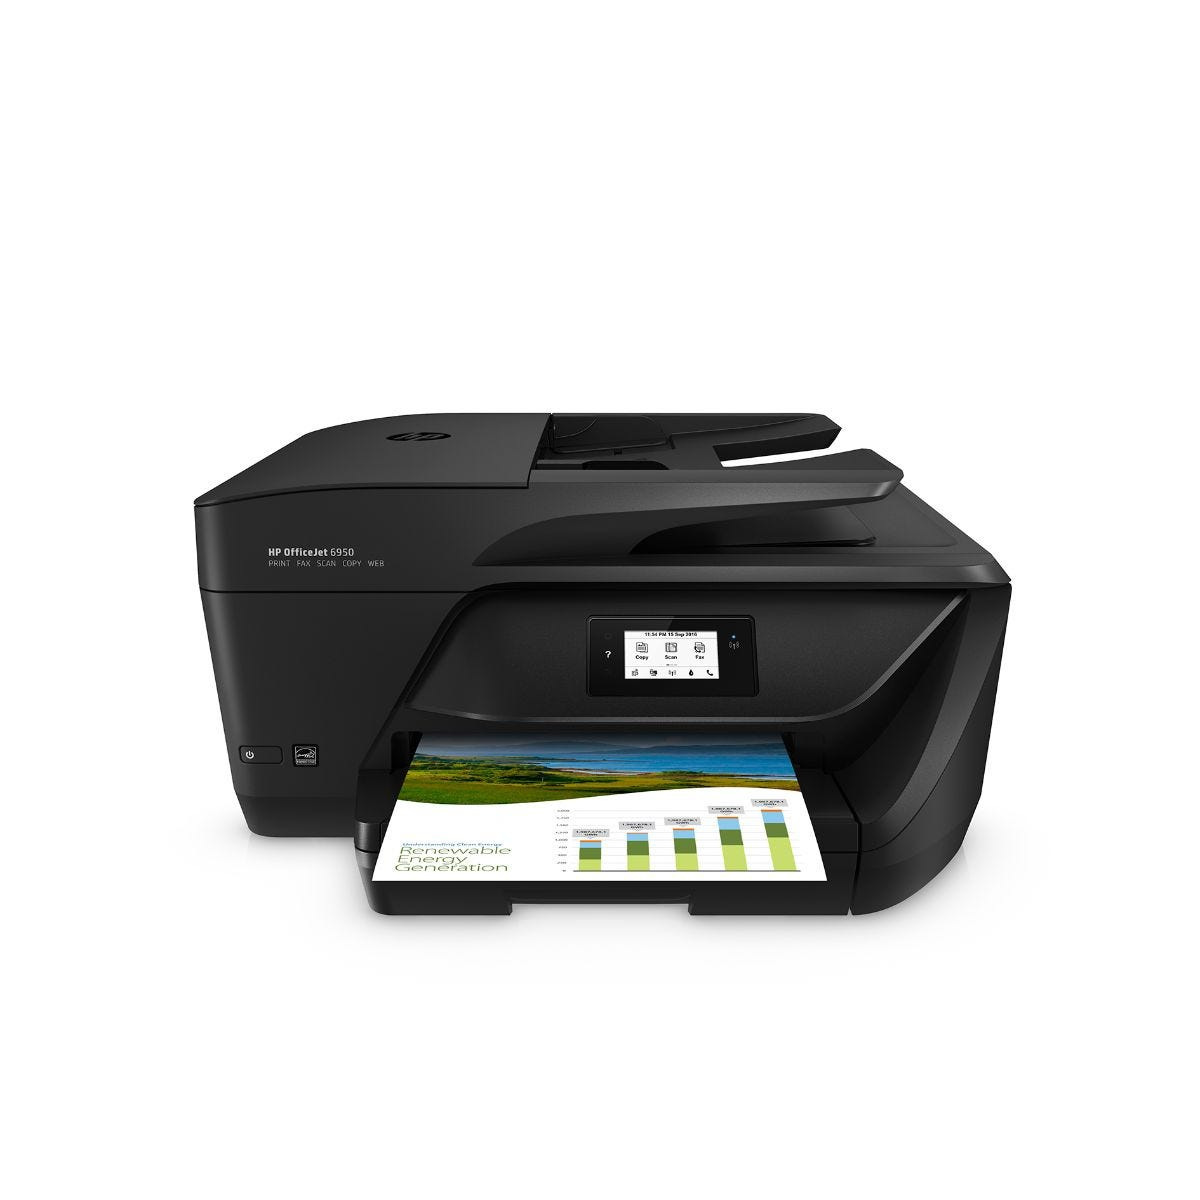 Image of HP OfficeJet 6950 All In One Printer, 600 x 1200DPI